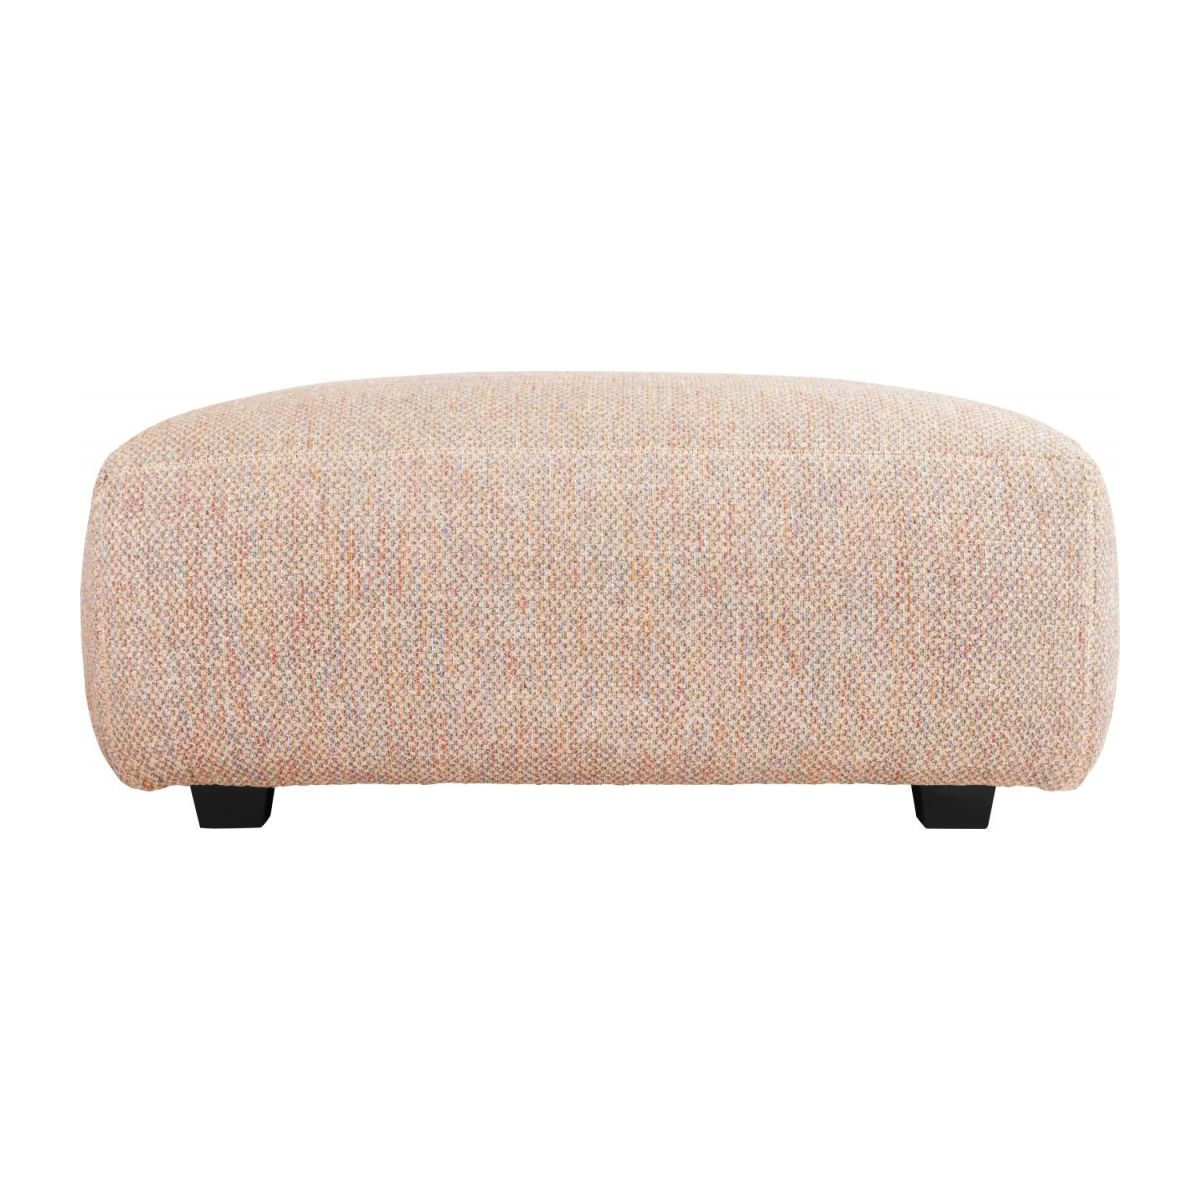 Footstool in Bellagio fabric, passion orange n°3